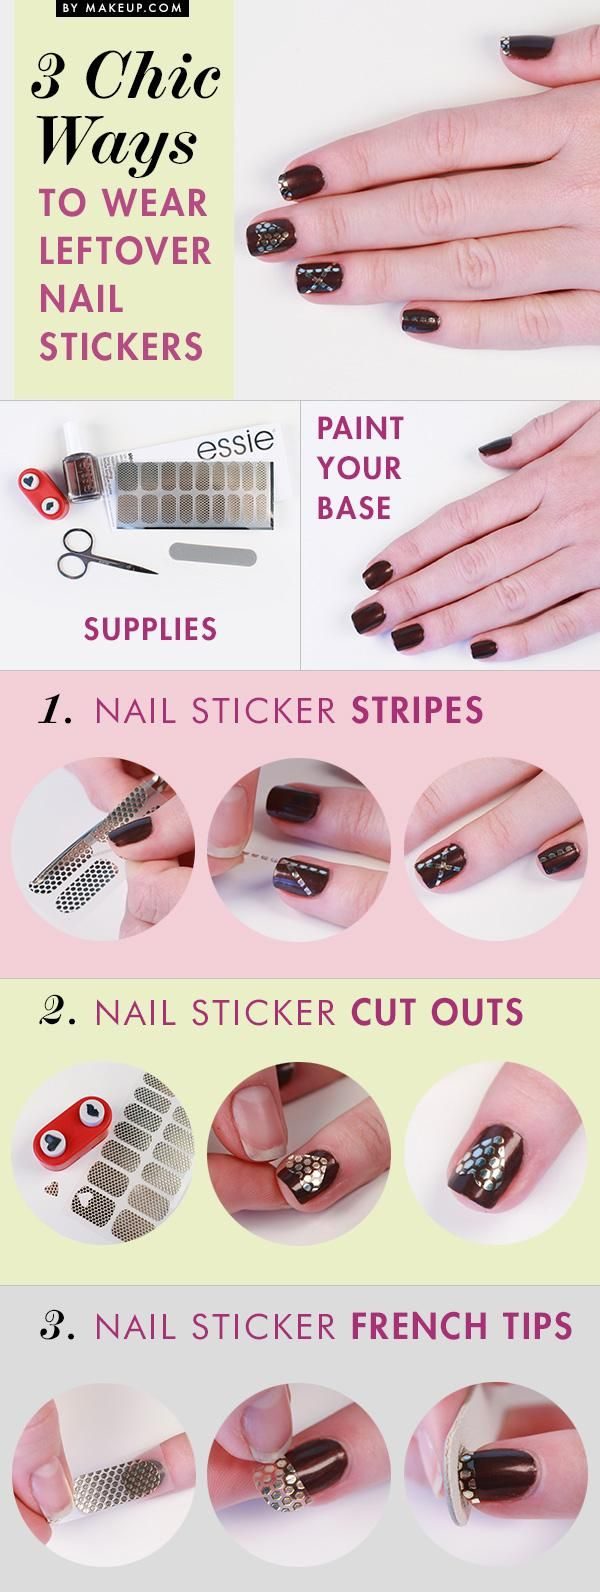 Makeup.com presents chic ways to wear nail stickers.